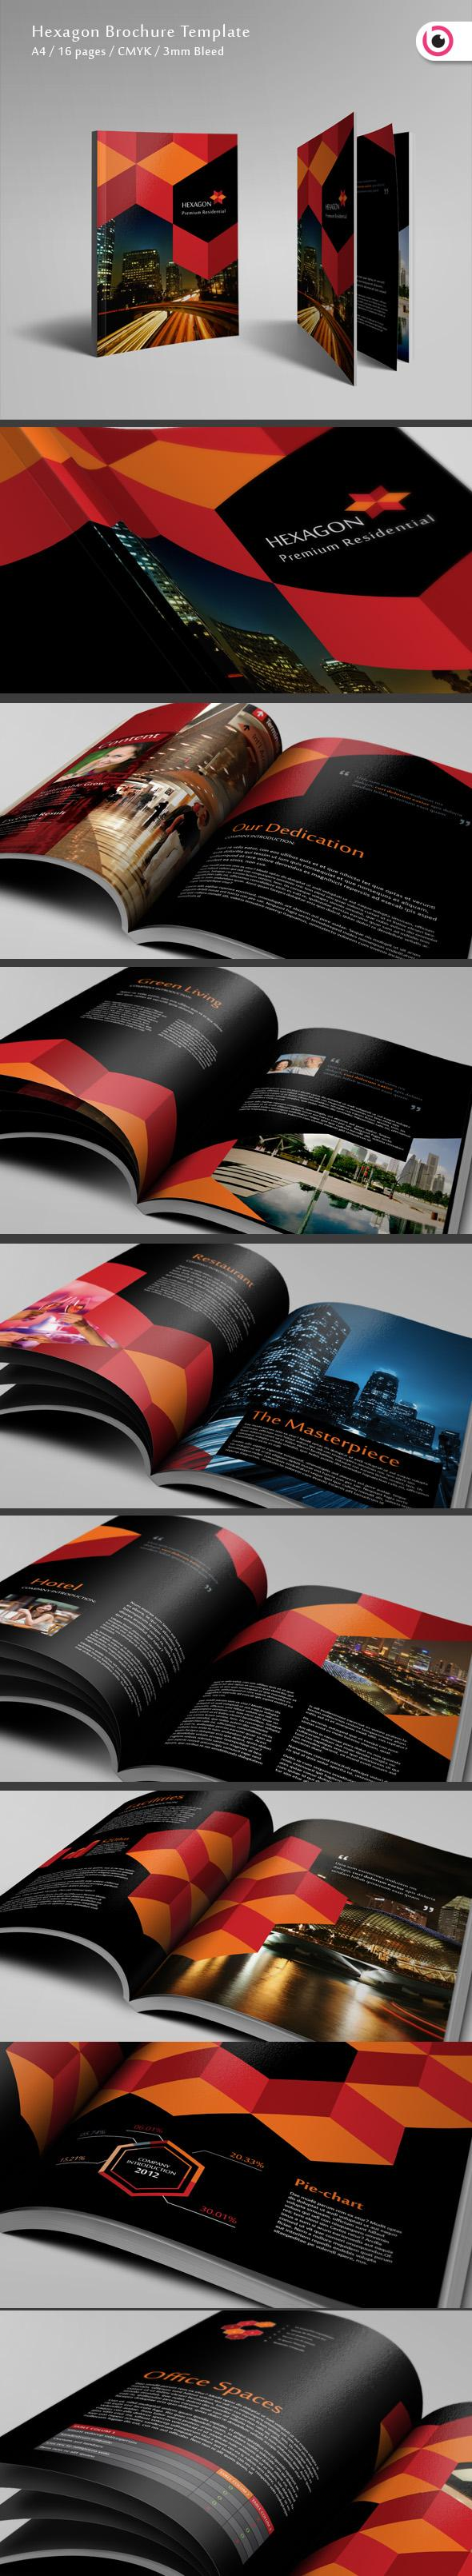 Hexagon Brochure 16 Pages - Brochures - Creattica